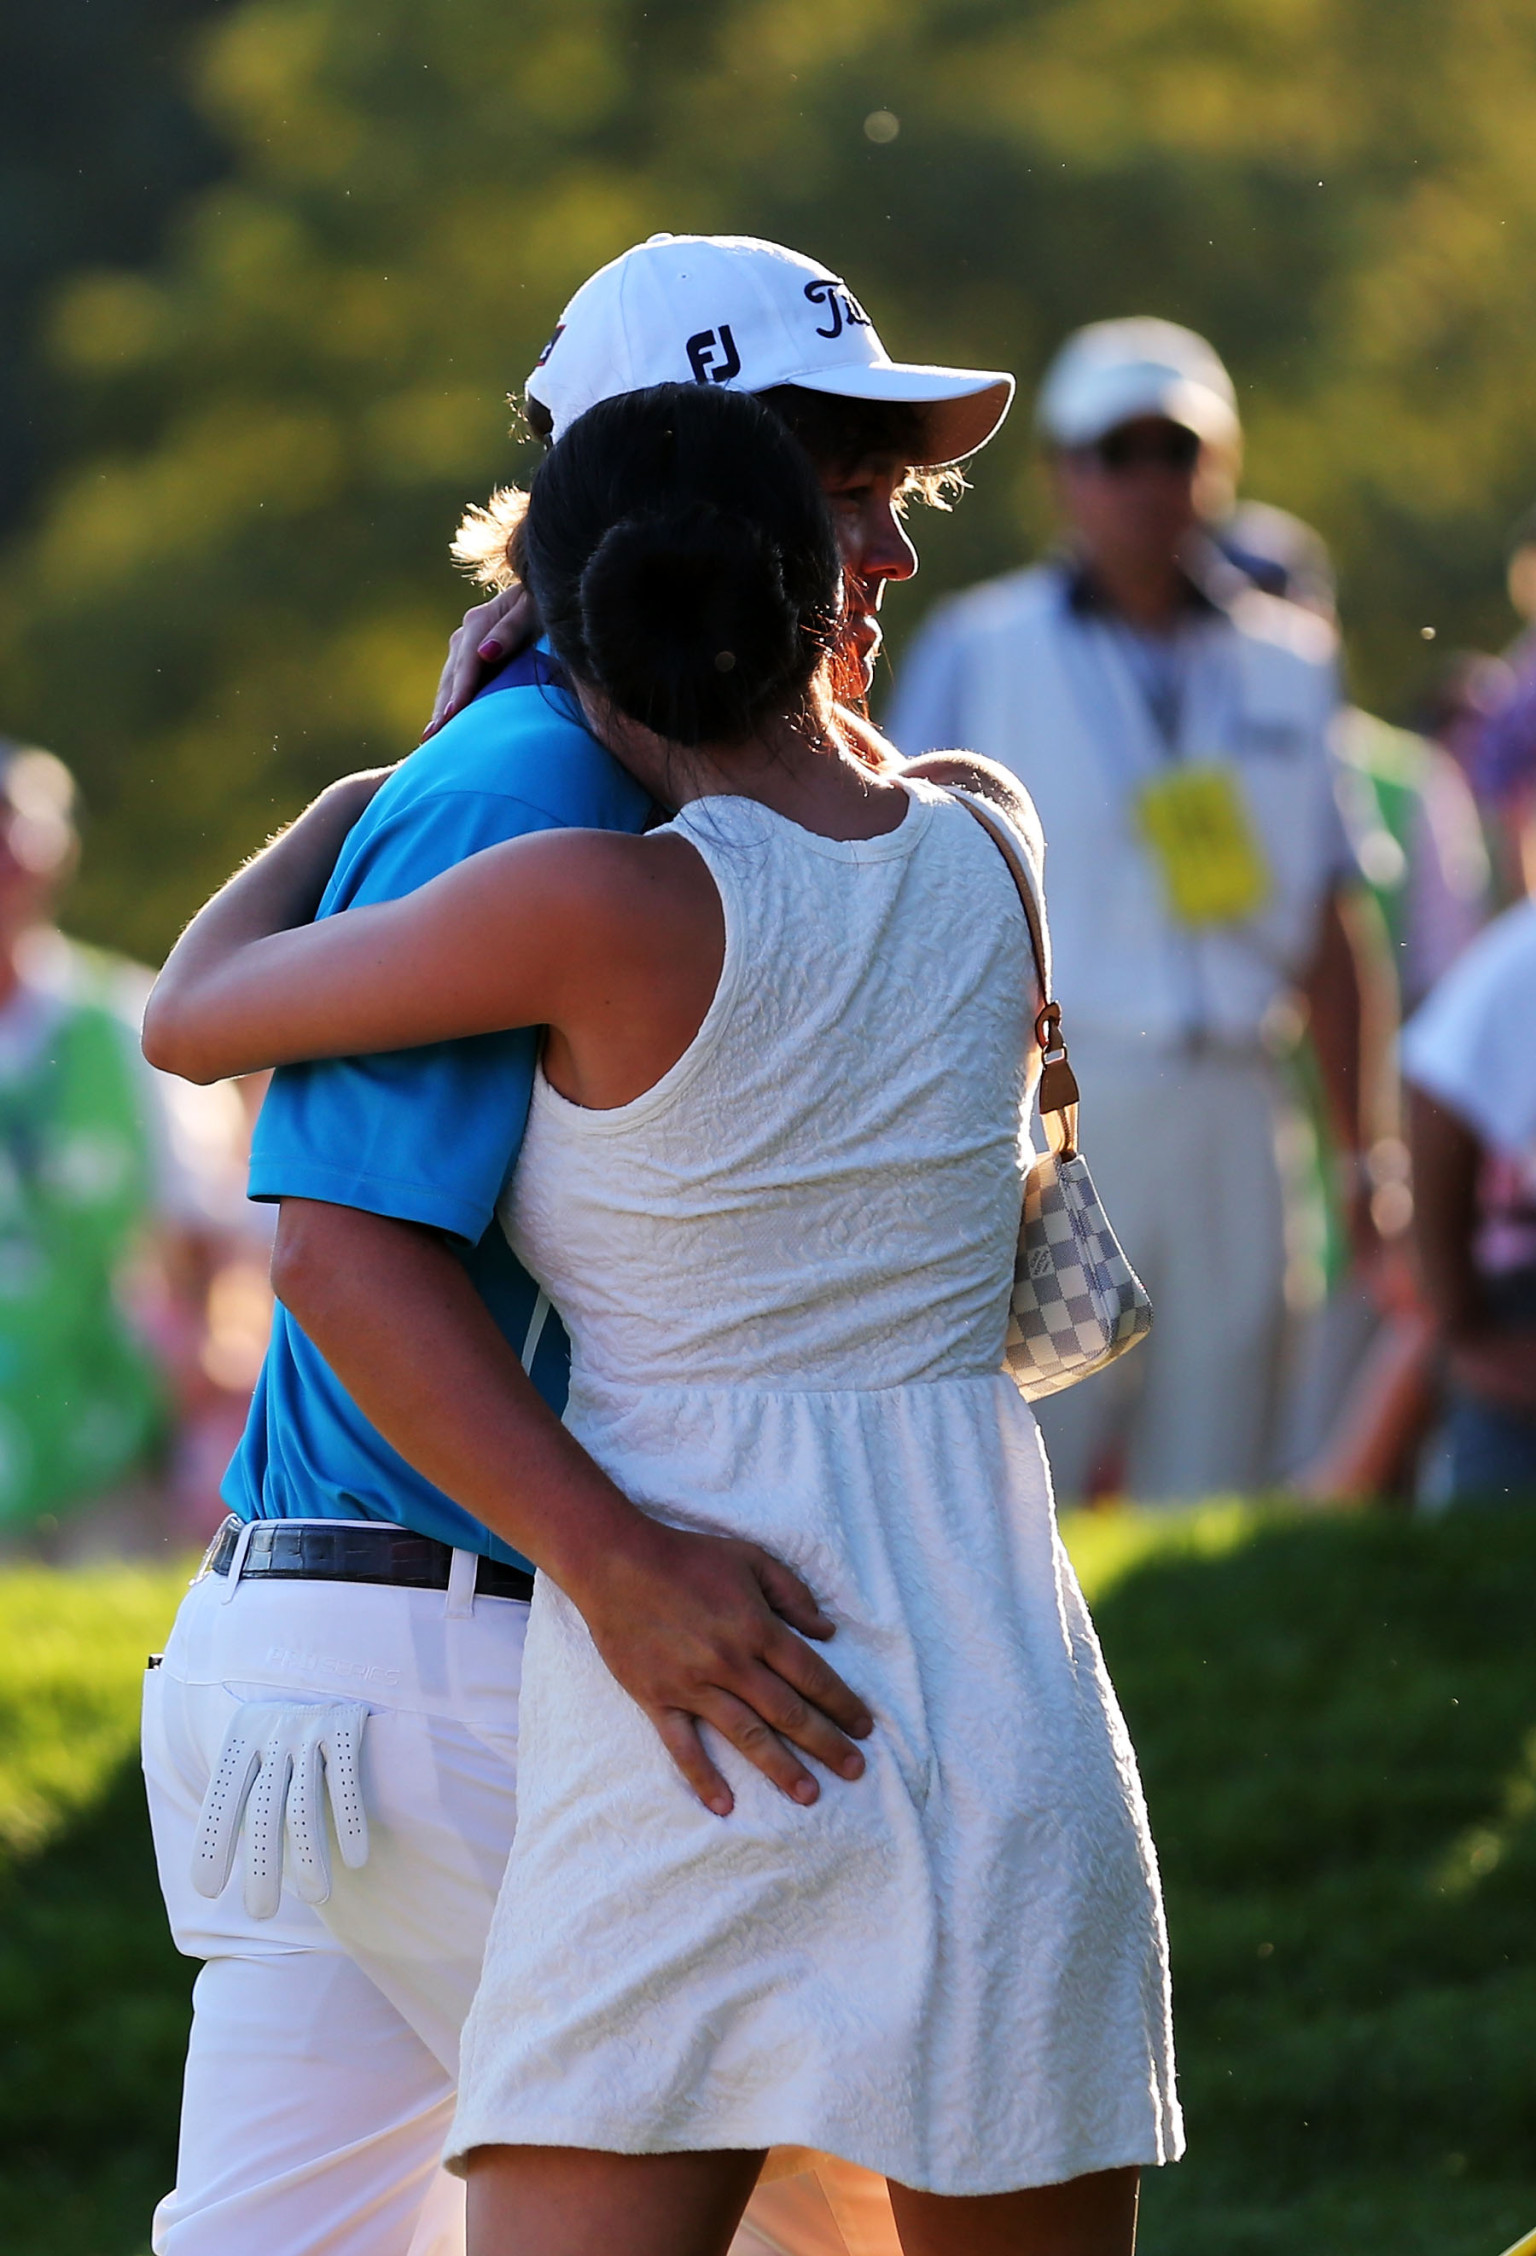 Jason Dufner Taps Wife Amanda On Butt Gets Copenhagen After PGA Championship VIDEO GIF PHOTOS